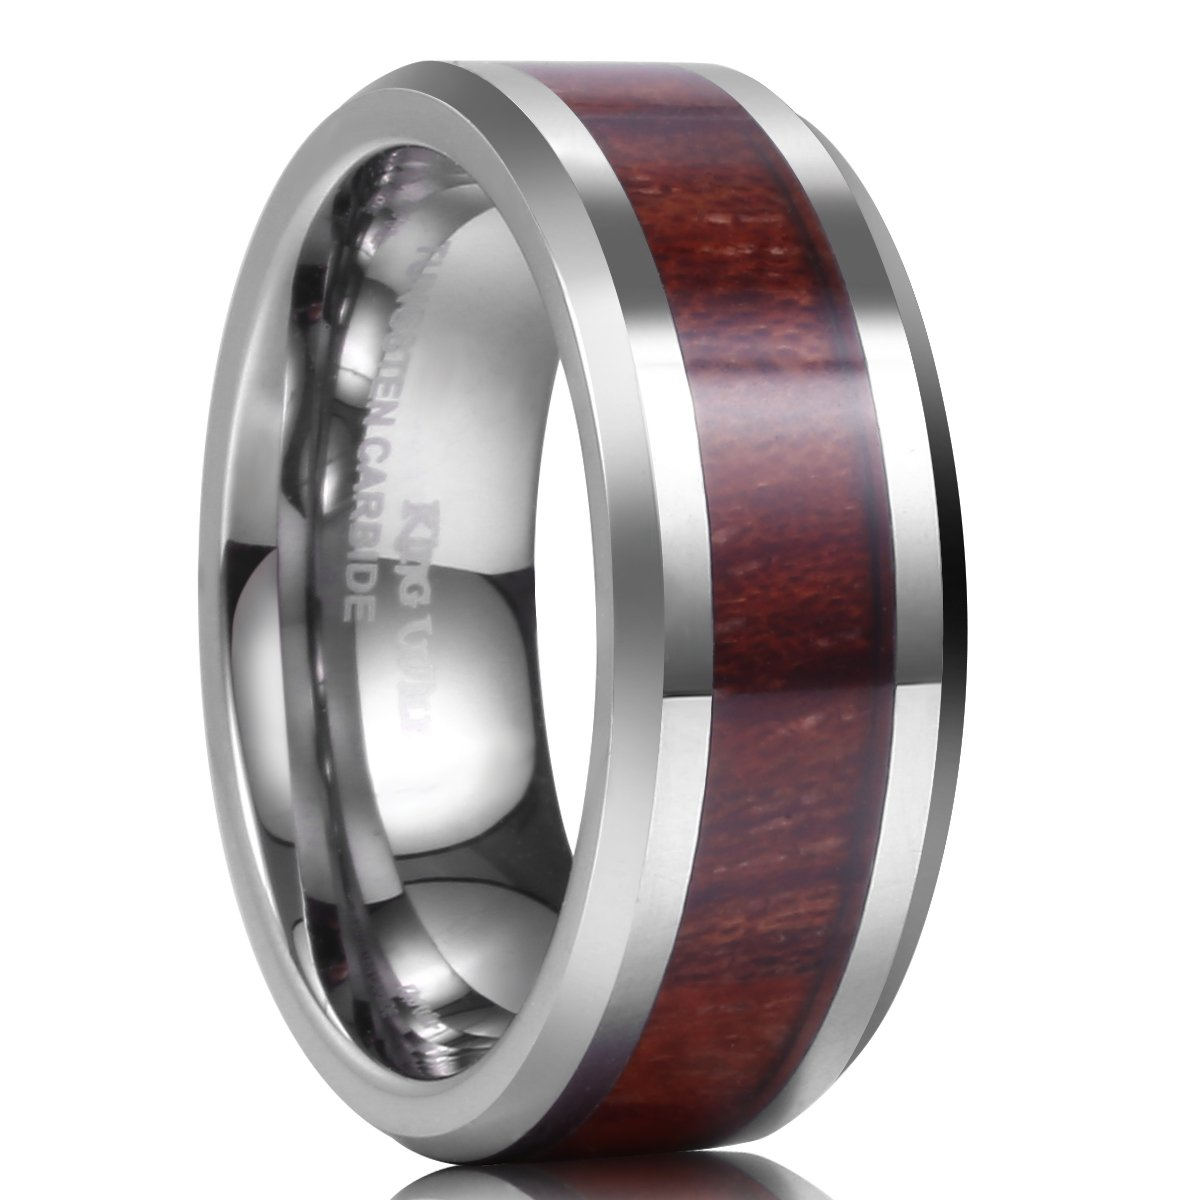 King Will Nature 8mm Real Wood Tungsten Carbide Ring High Polished Wedding Band Comfort Fit(6.5) by King Will (Image #1)